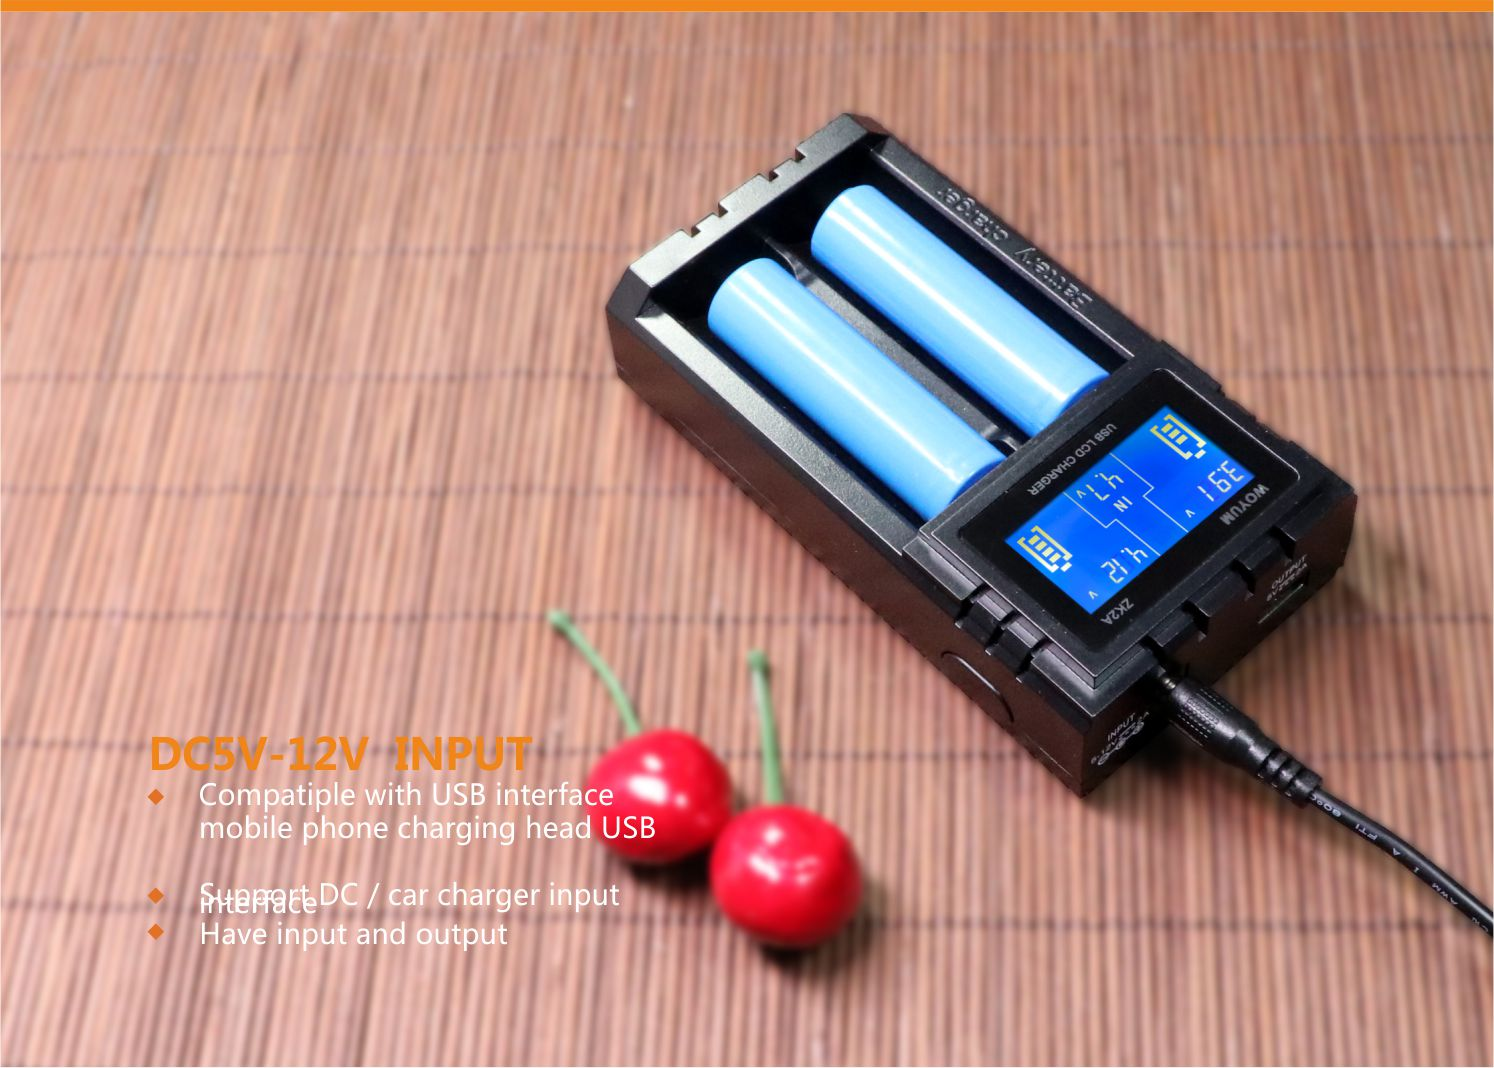 Woyum smart battery charger series for Li-ion-4